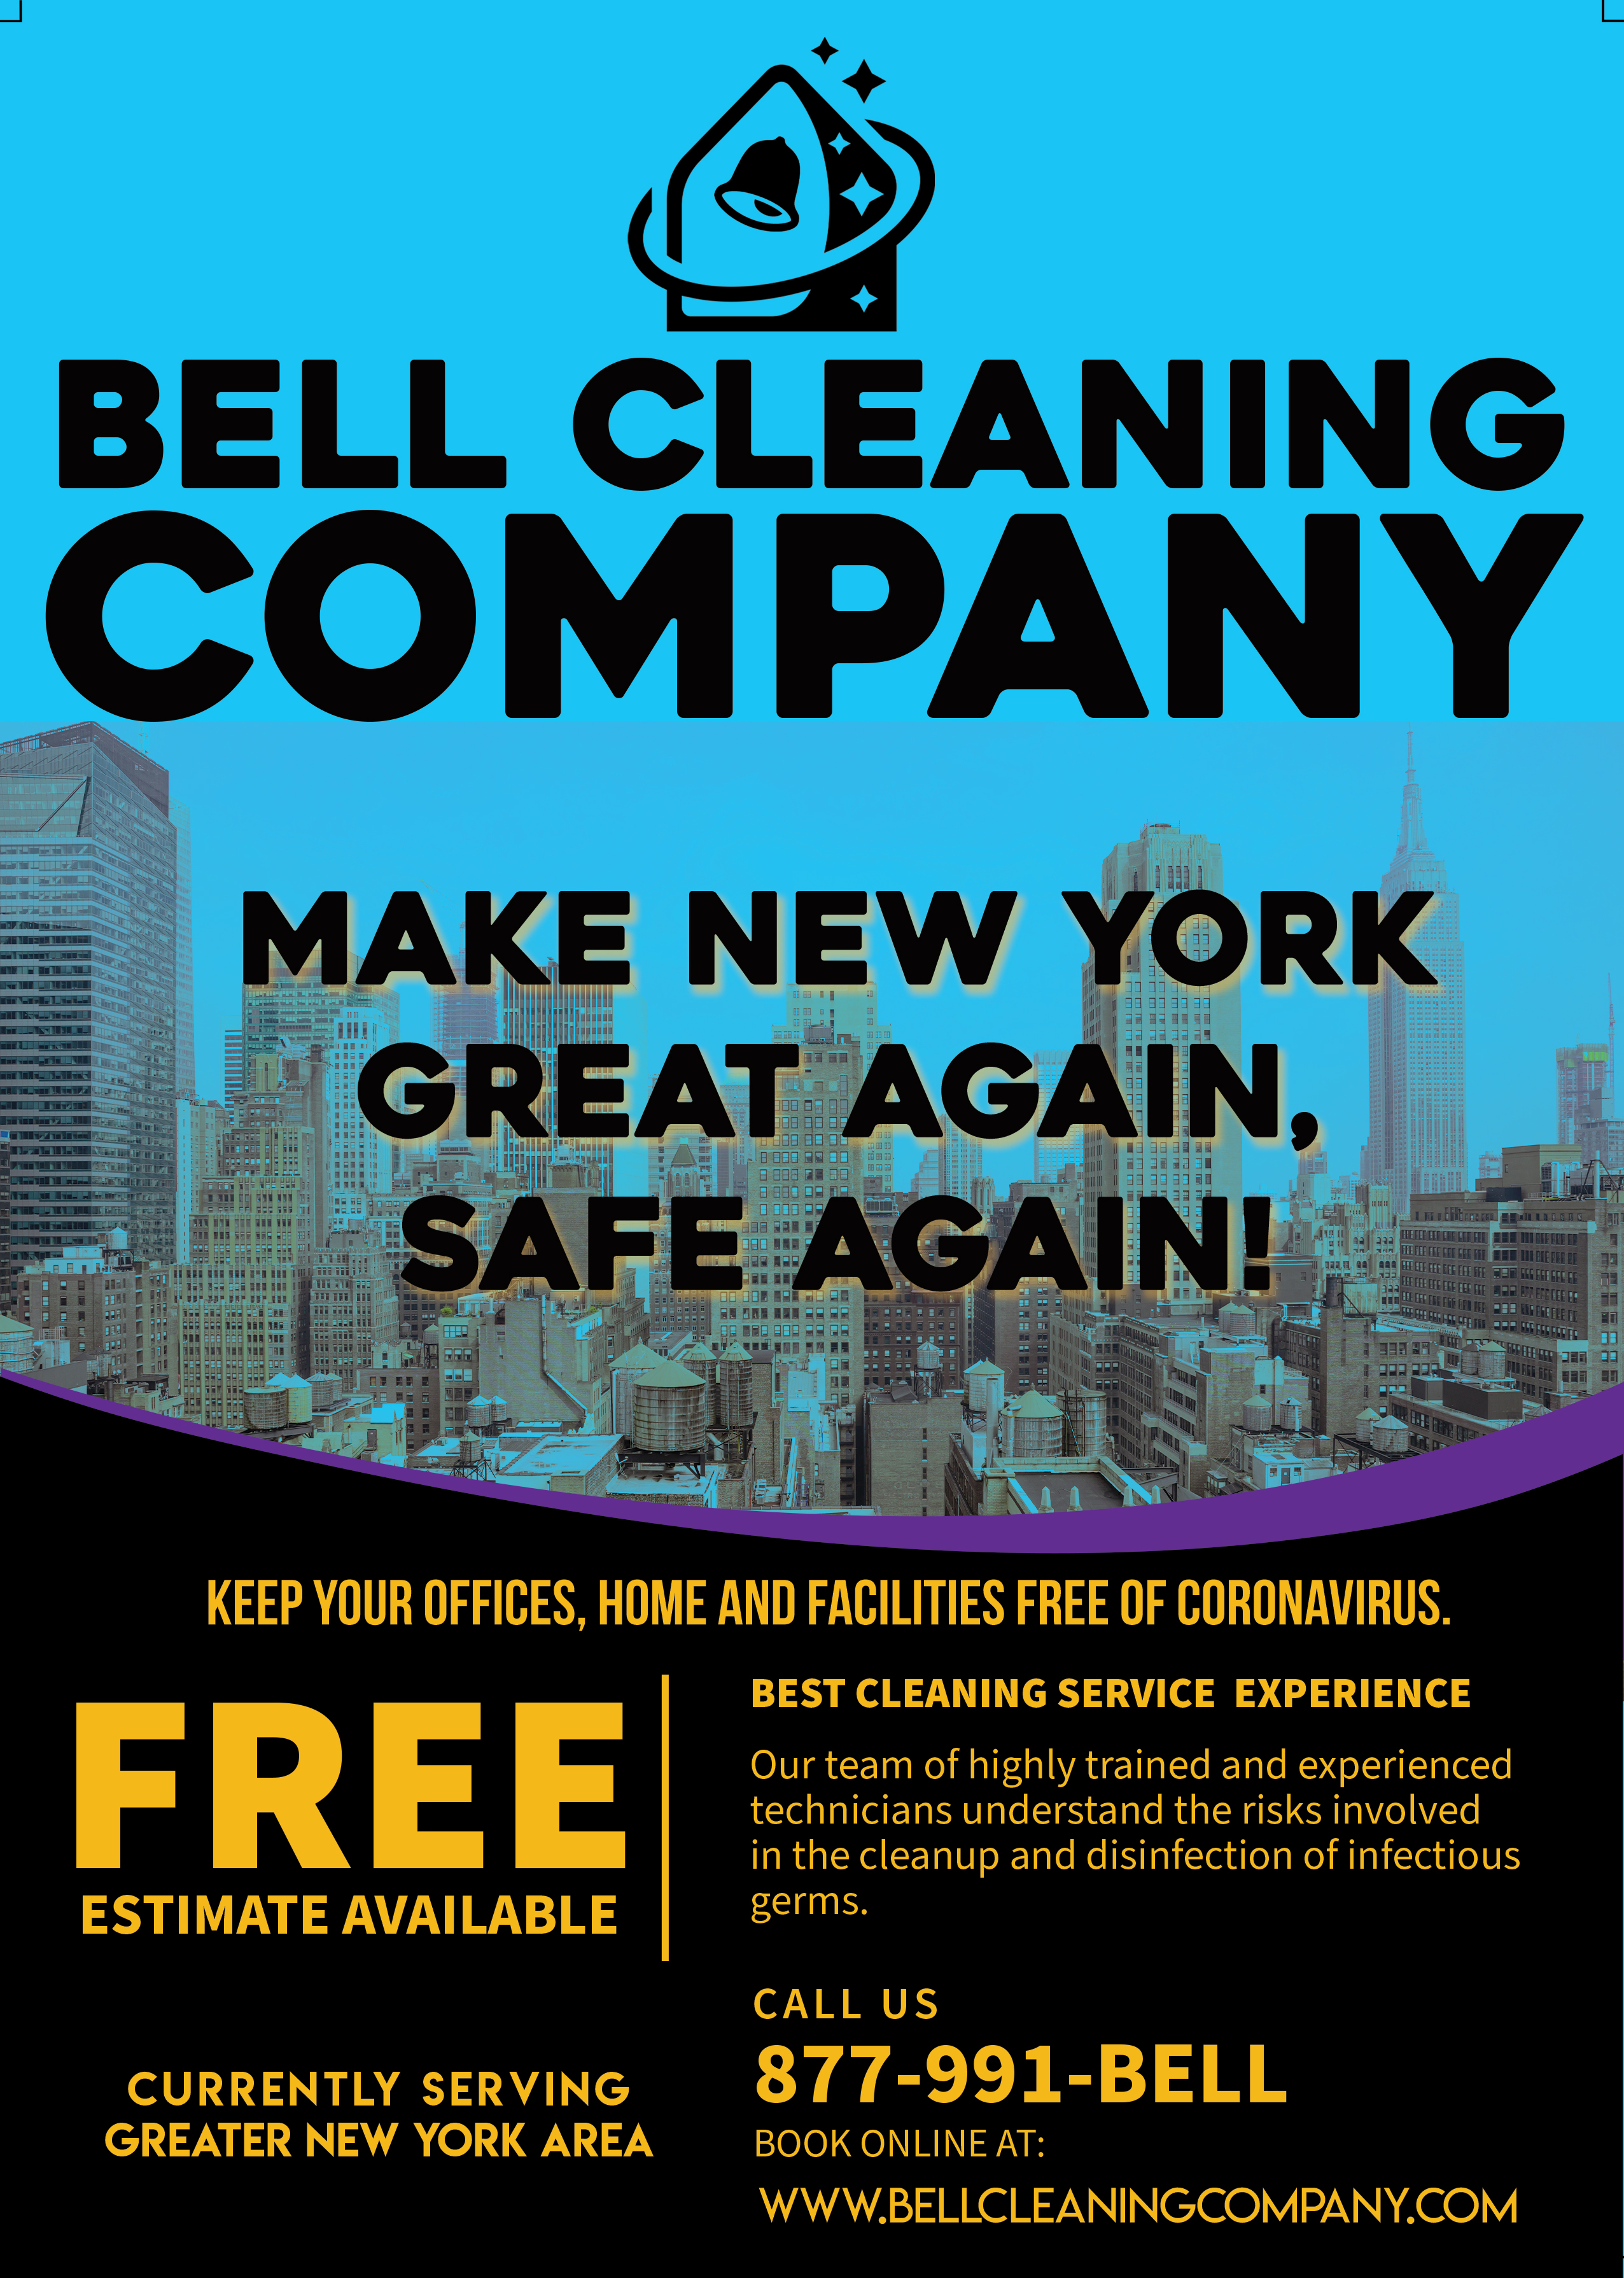 Bell Cleaning Company